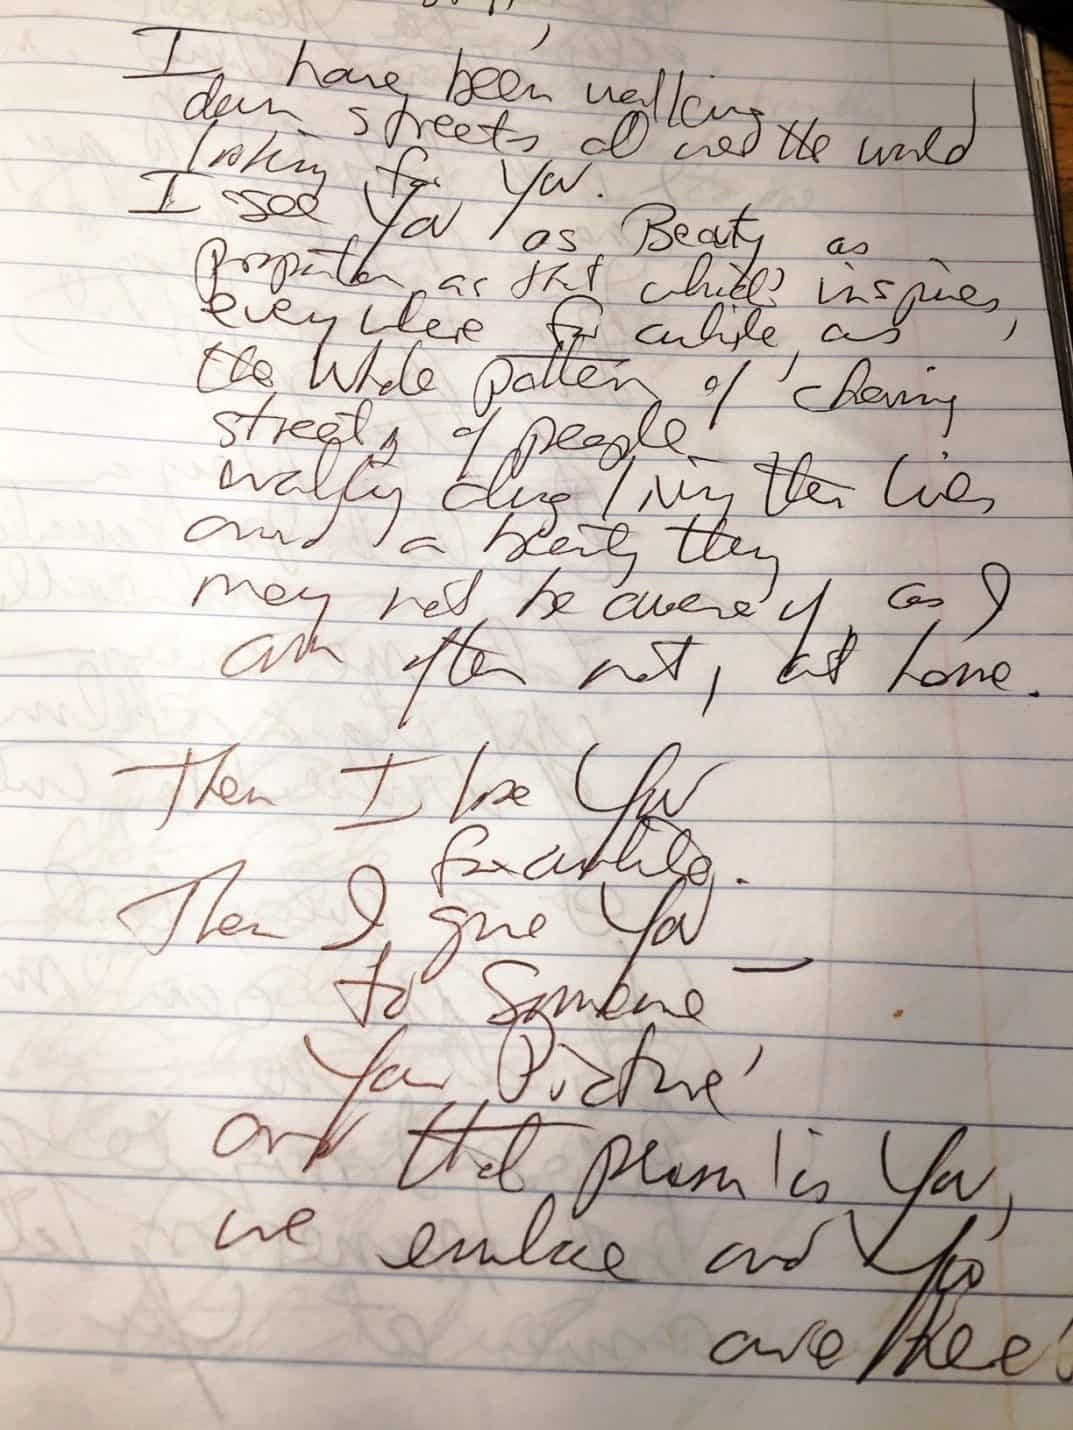 Poem written at Poetry Cafe - An American in Argentina